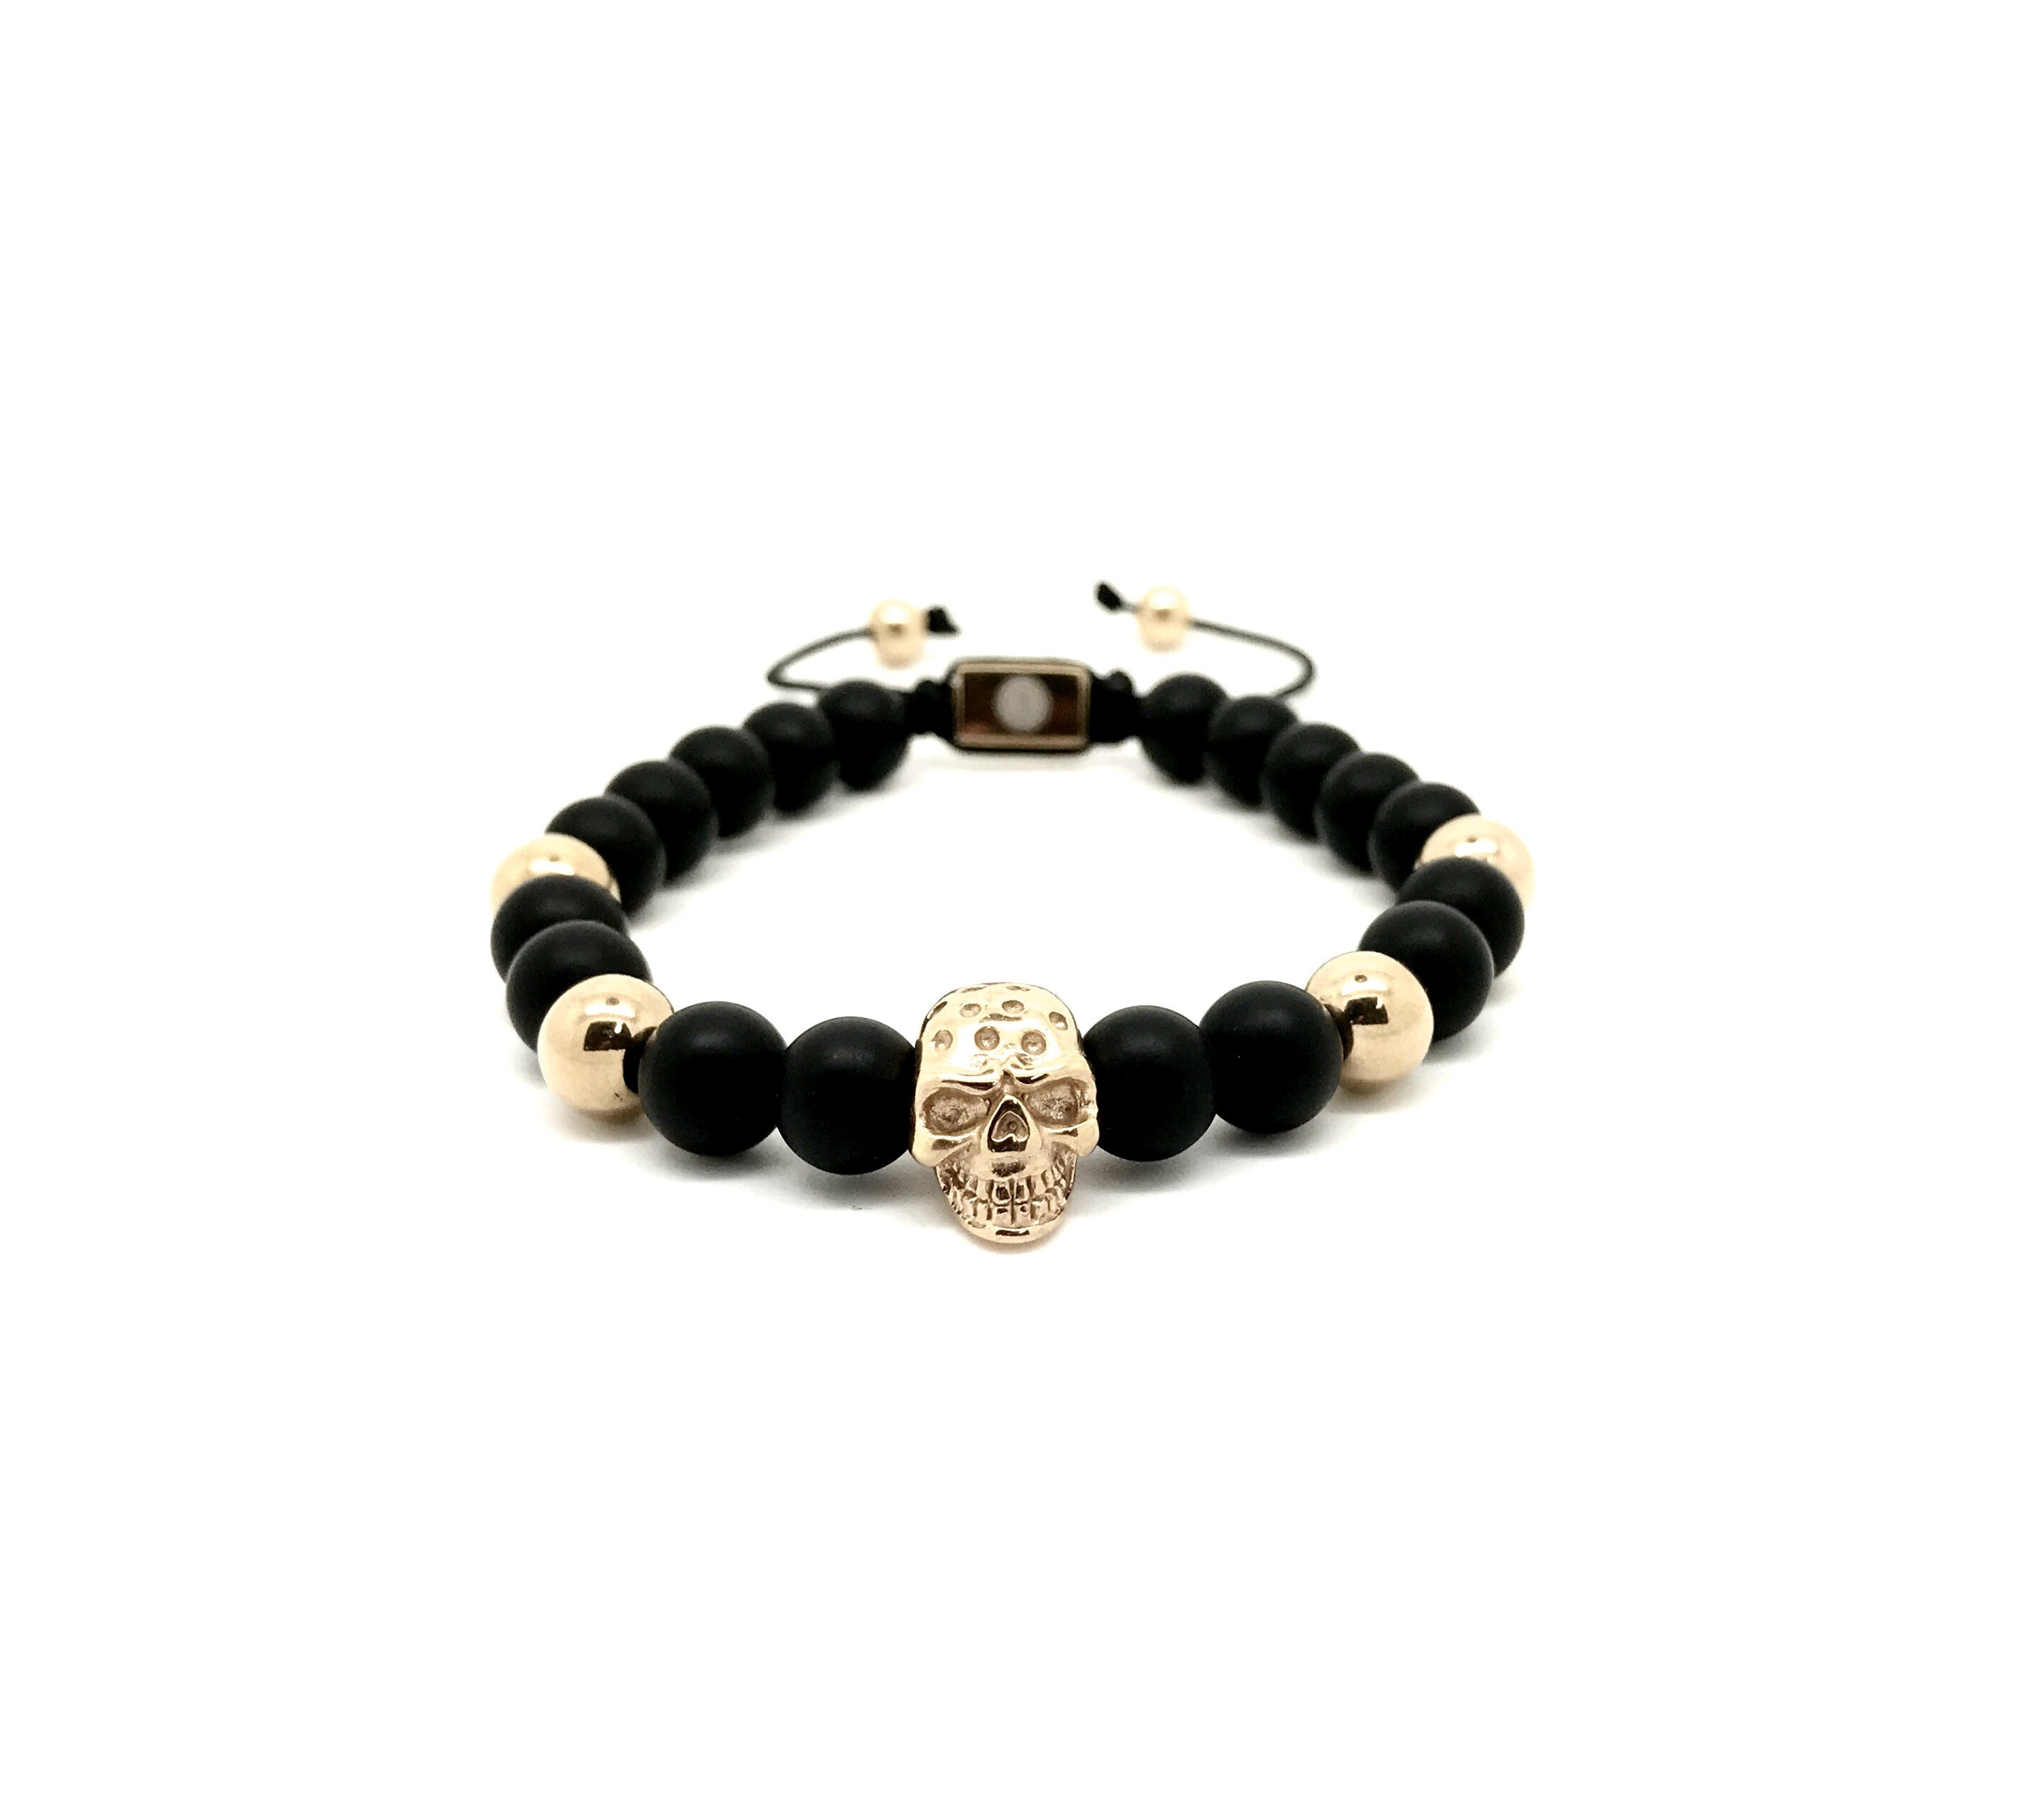 man bracelets black collections bracelet products gold steel road lack collection stainless to